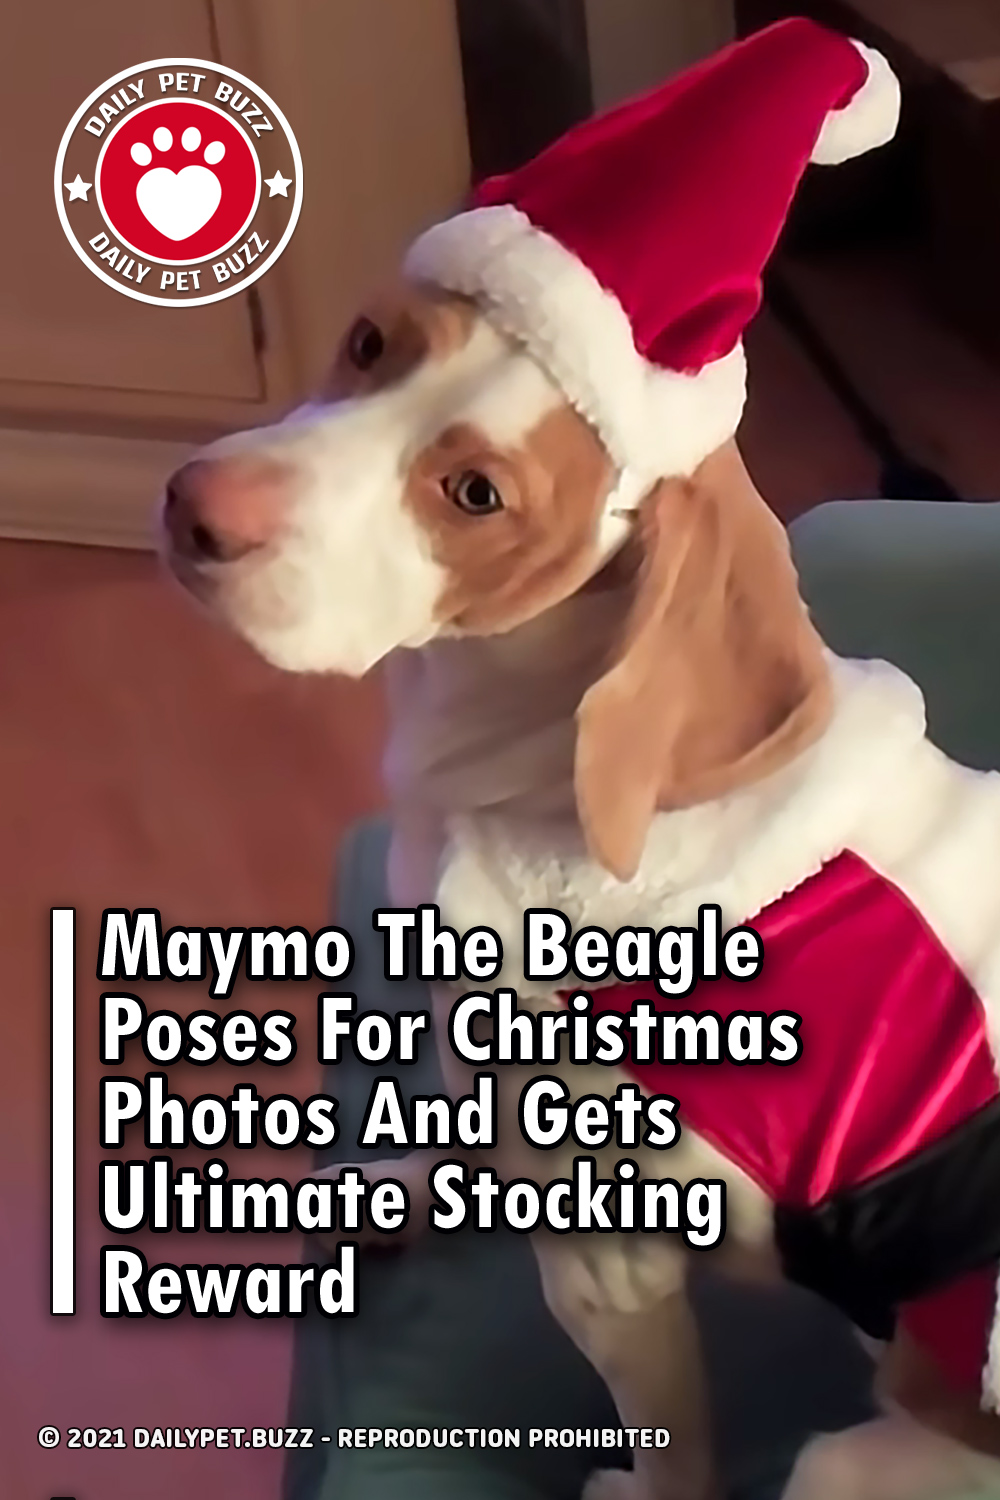 Maymo The Beagle Poses For Christmas Photos And Gets Ultimate Stocking Reward